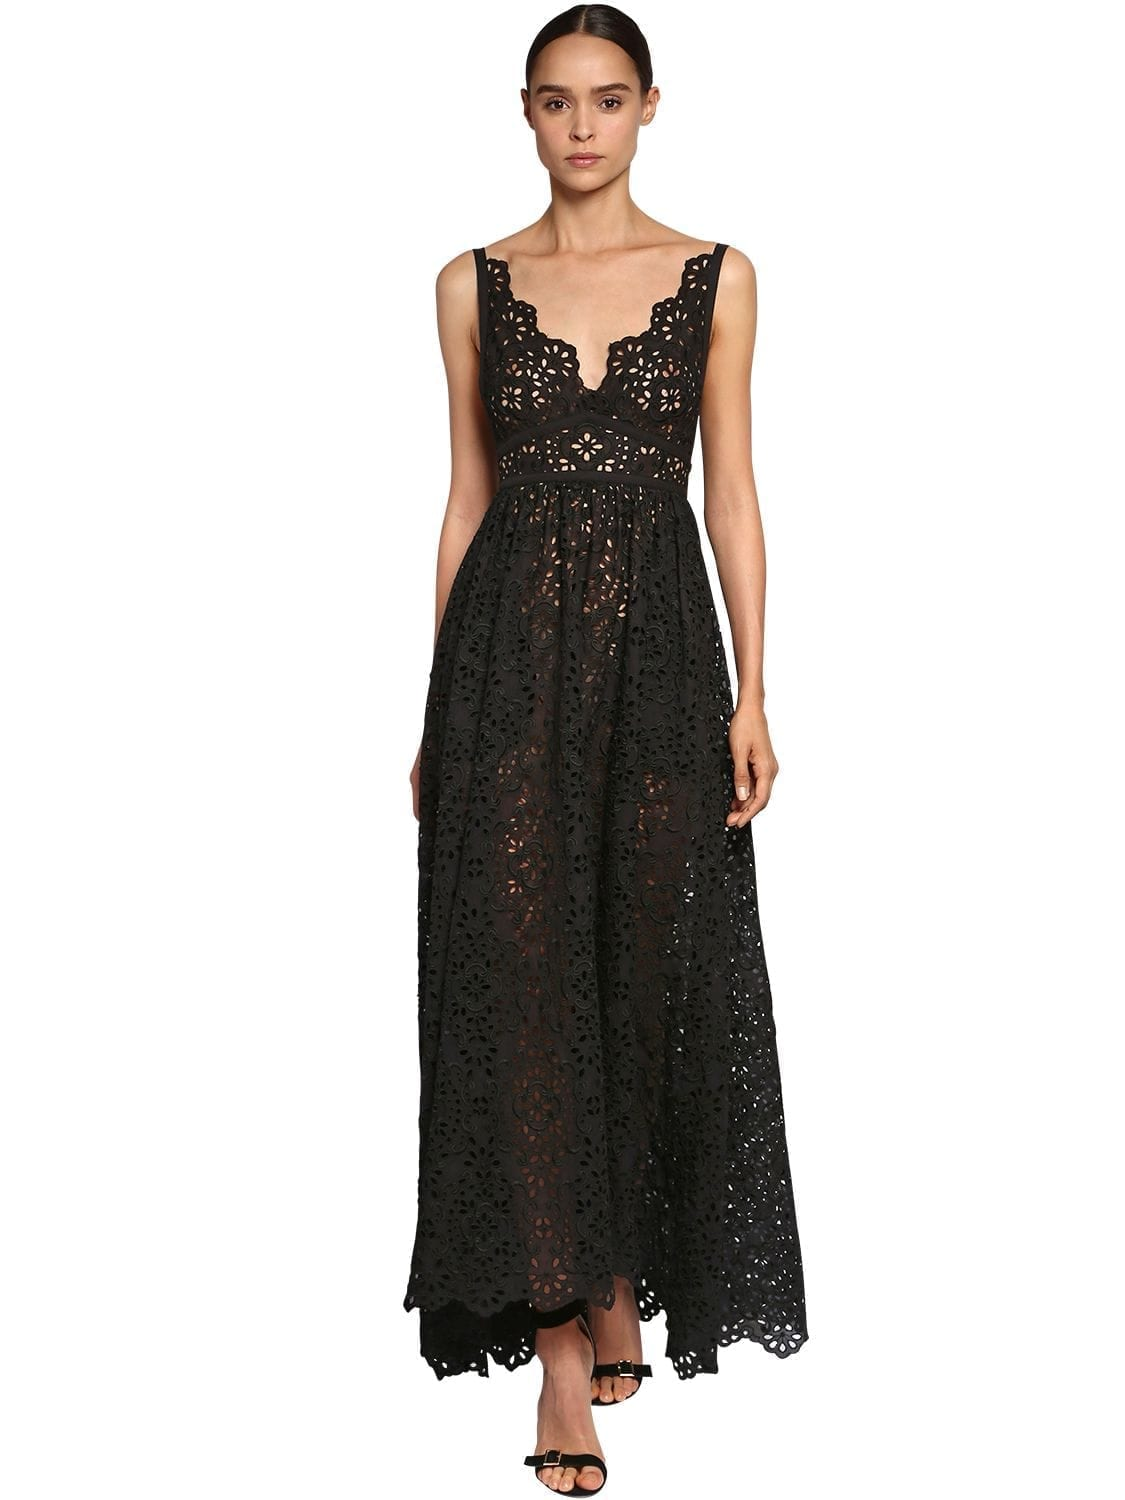 ELIE SAAB Poplin Bow Cotton Blend Lace Dress